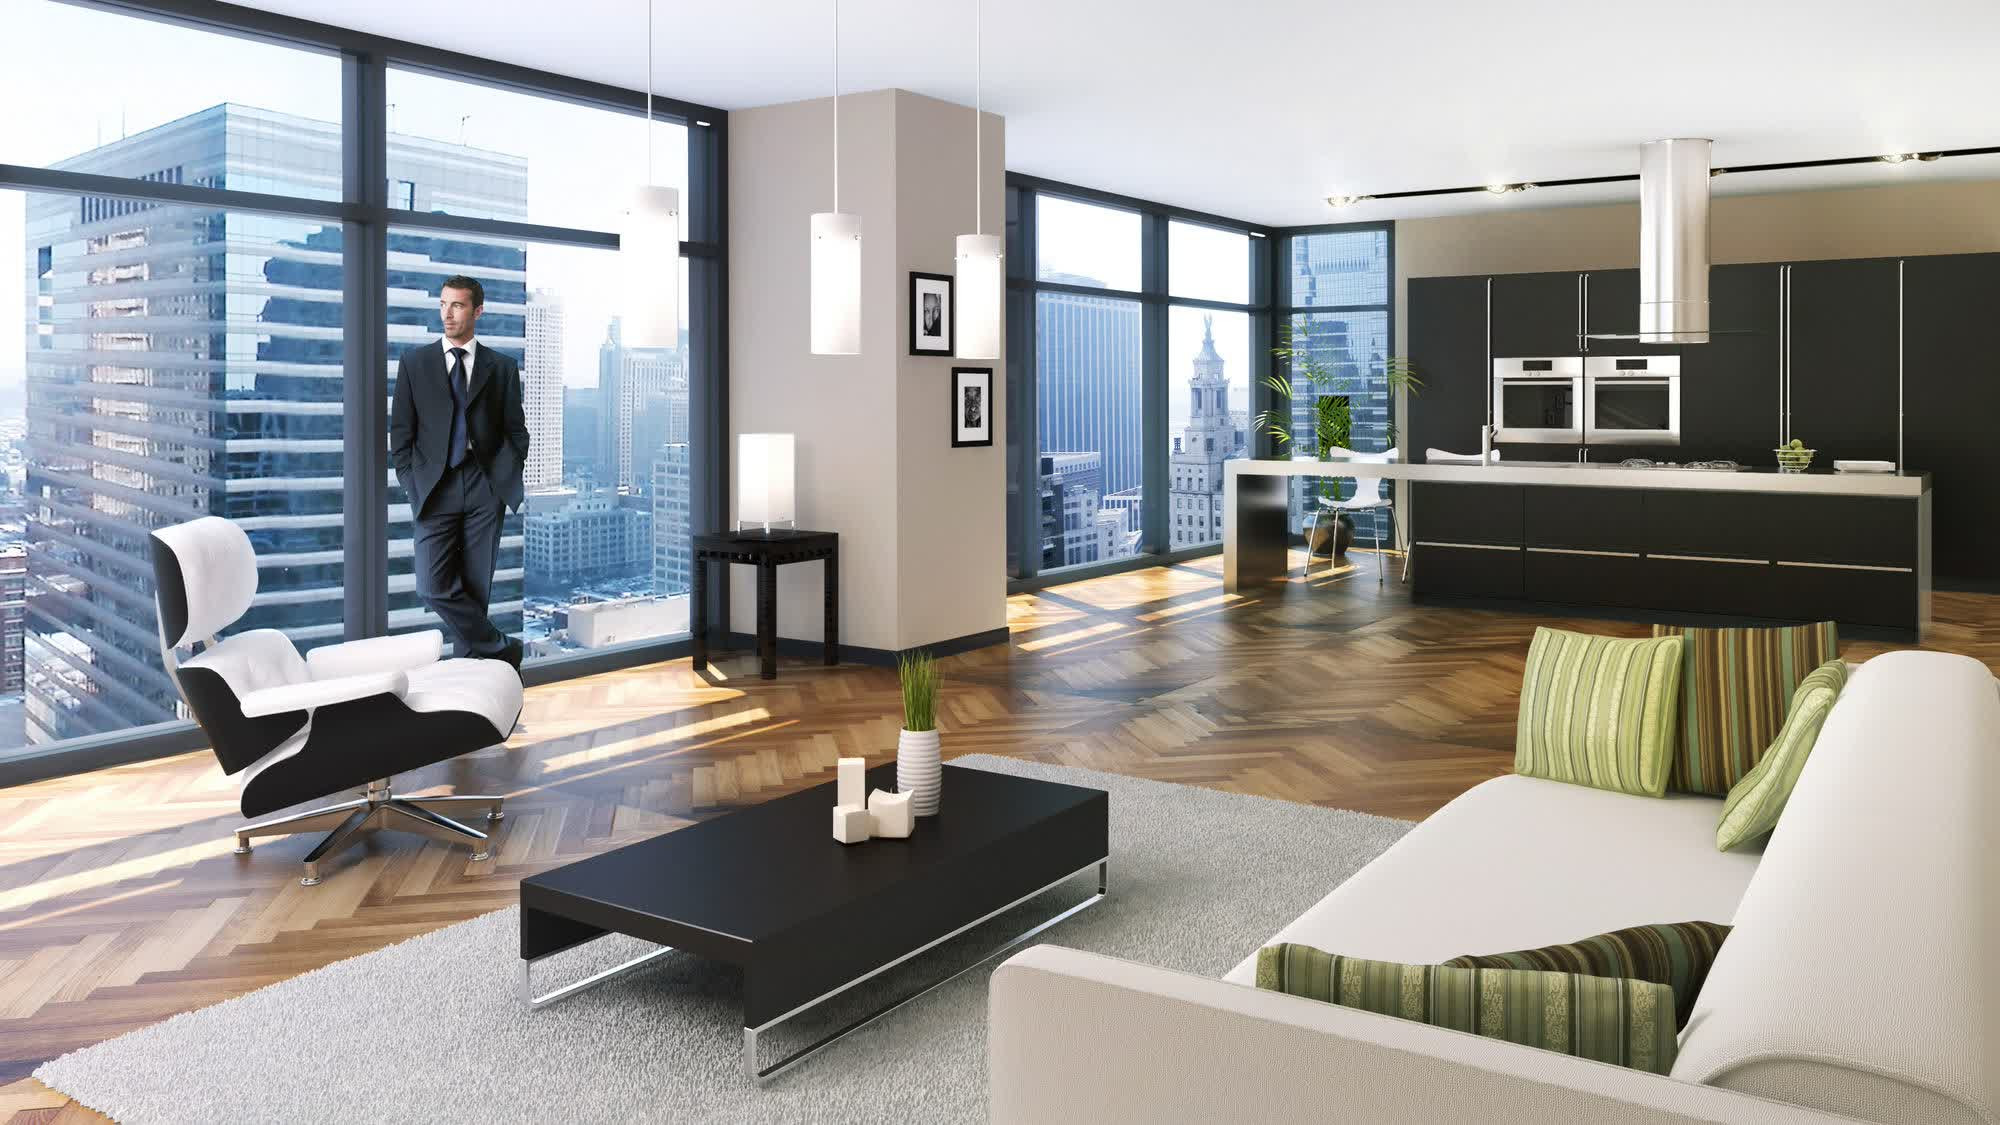 An Inspiring Chicago Interior Design Firms With A Great ...